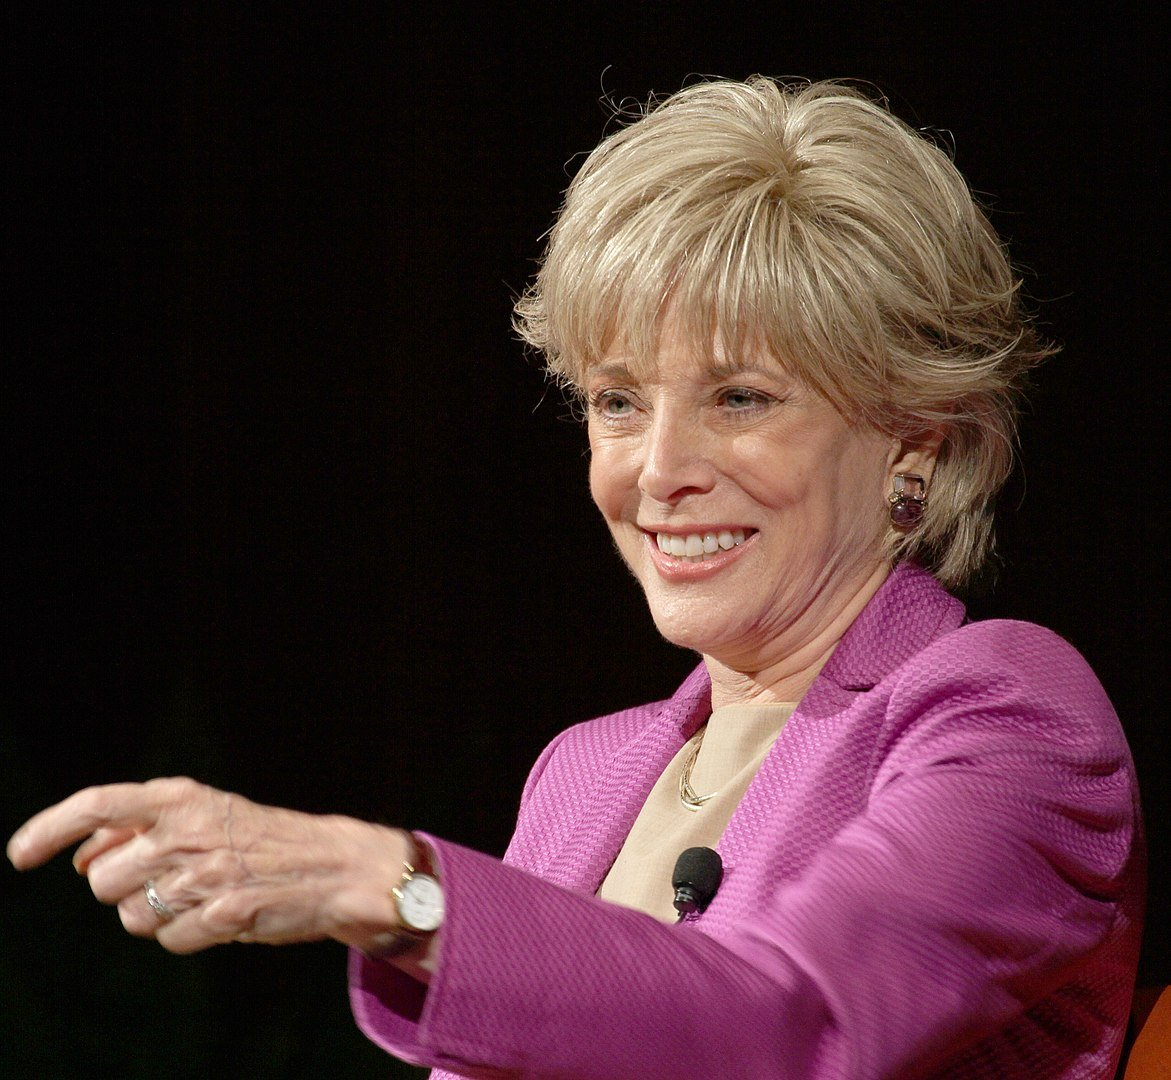 Lesley Stahl in October 2010 at the Lyndon Baines Johnson Library and Museum in Texas | Photo: Getty Images